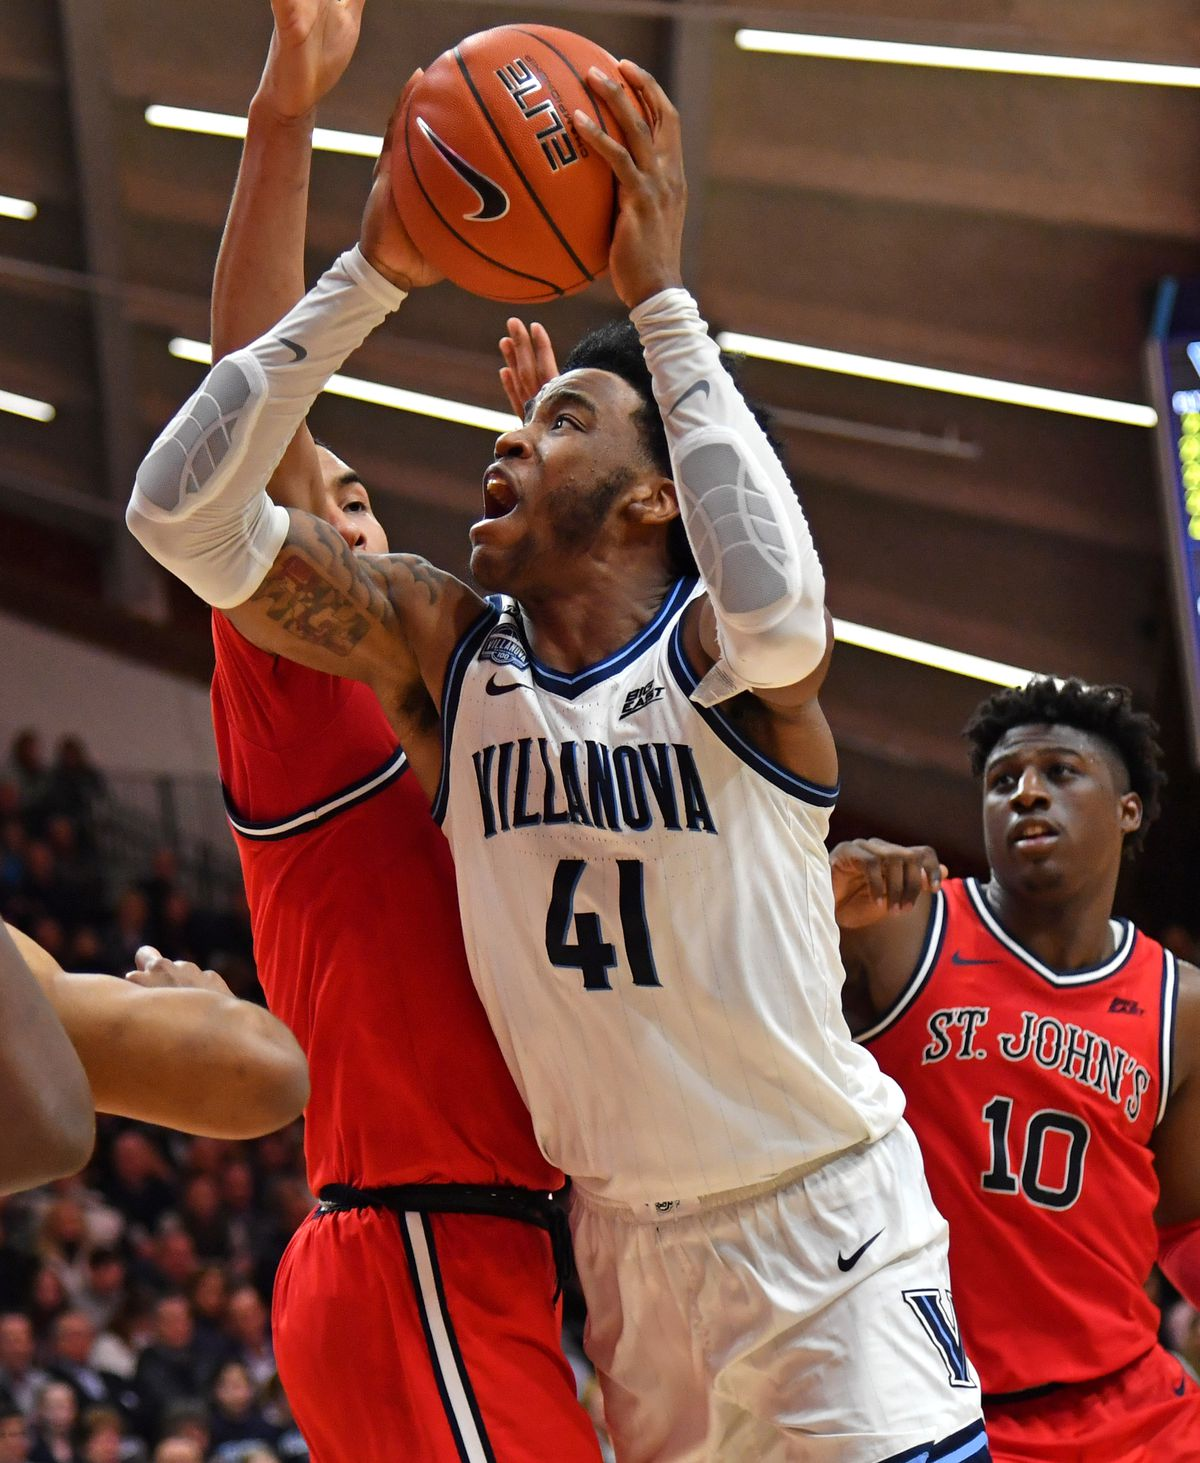 NCAA Basketball: St. John at Villanova